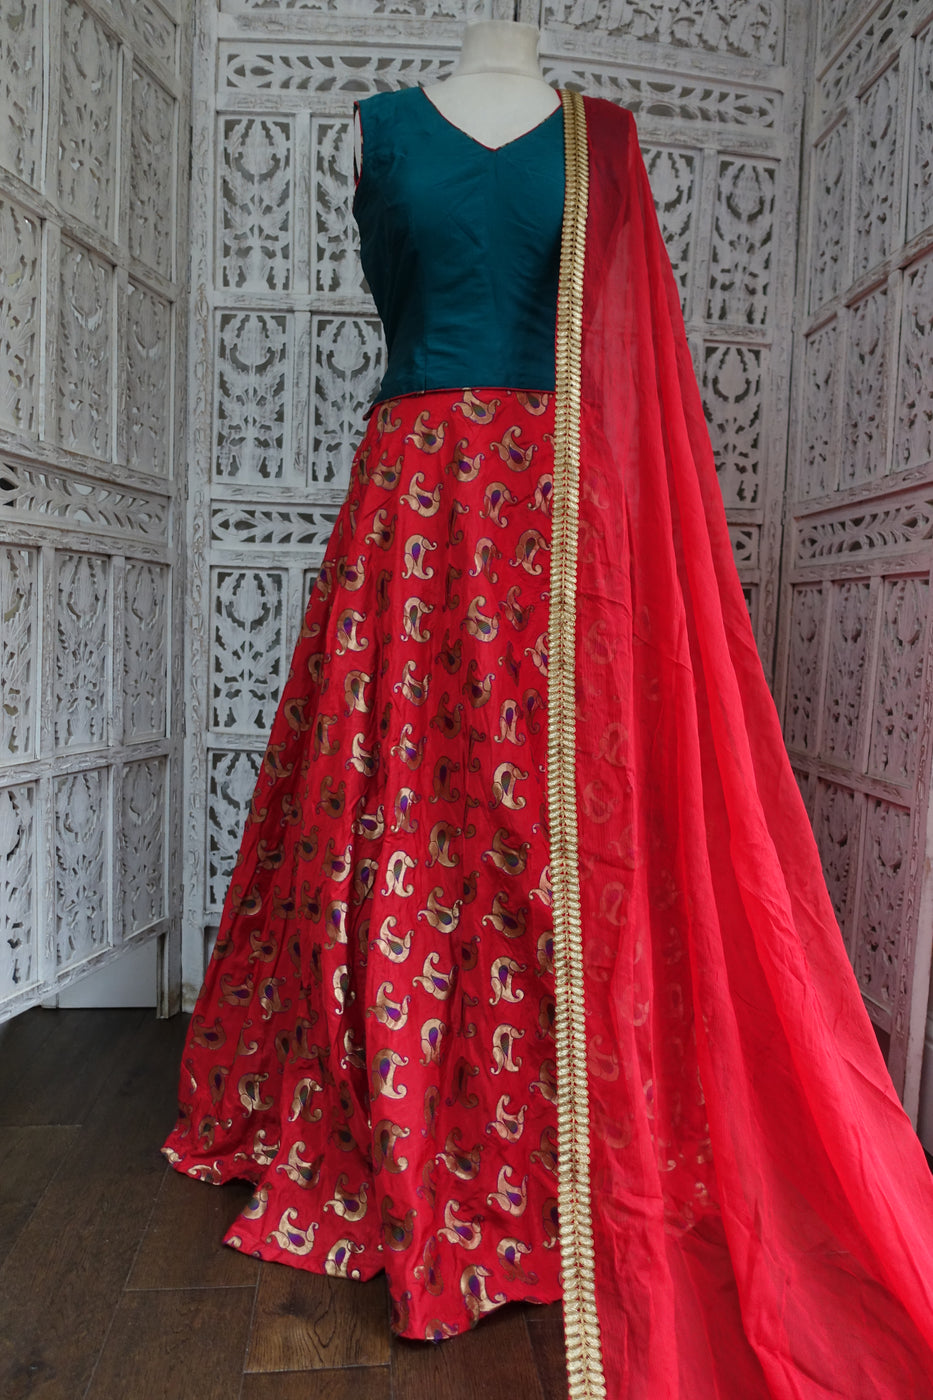 Teal & Red Silk Lengha - UK Size 12 / EU Size 38 - Preloved - Indian Suit Company